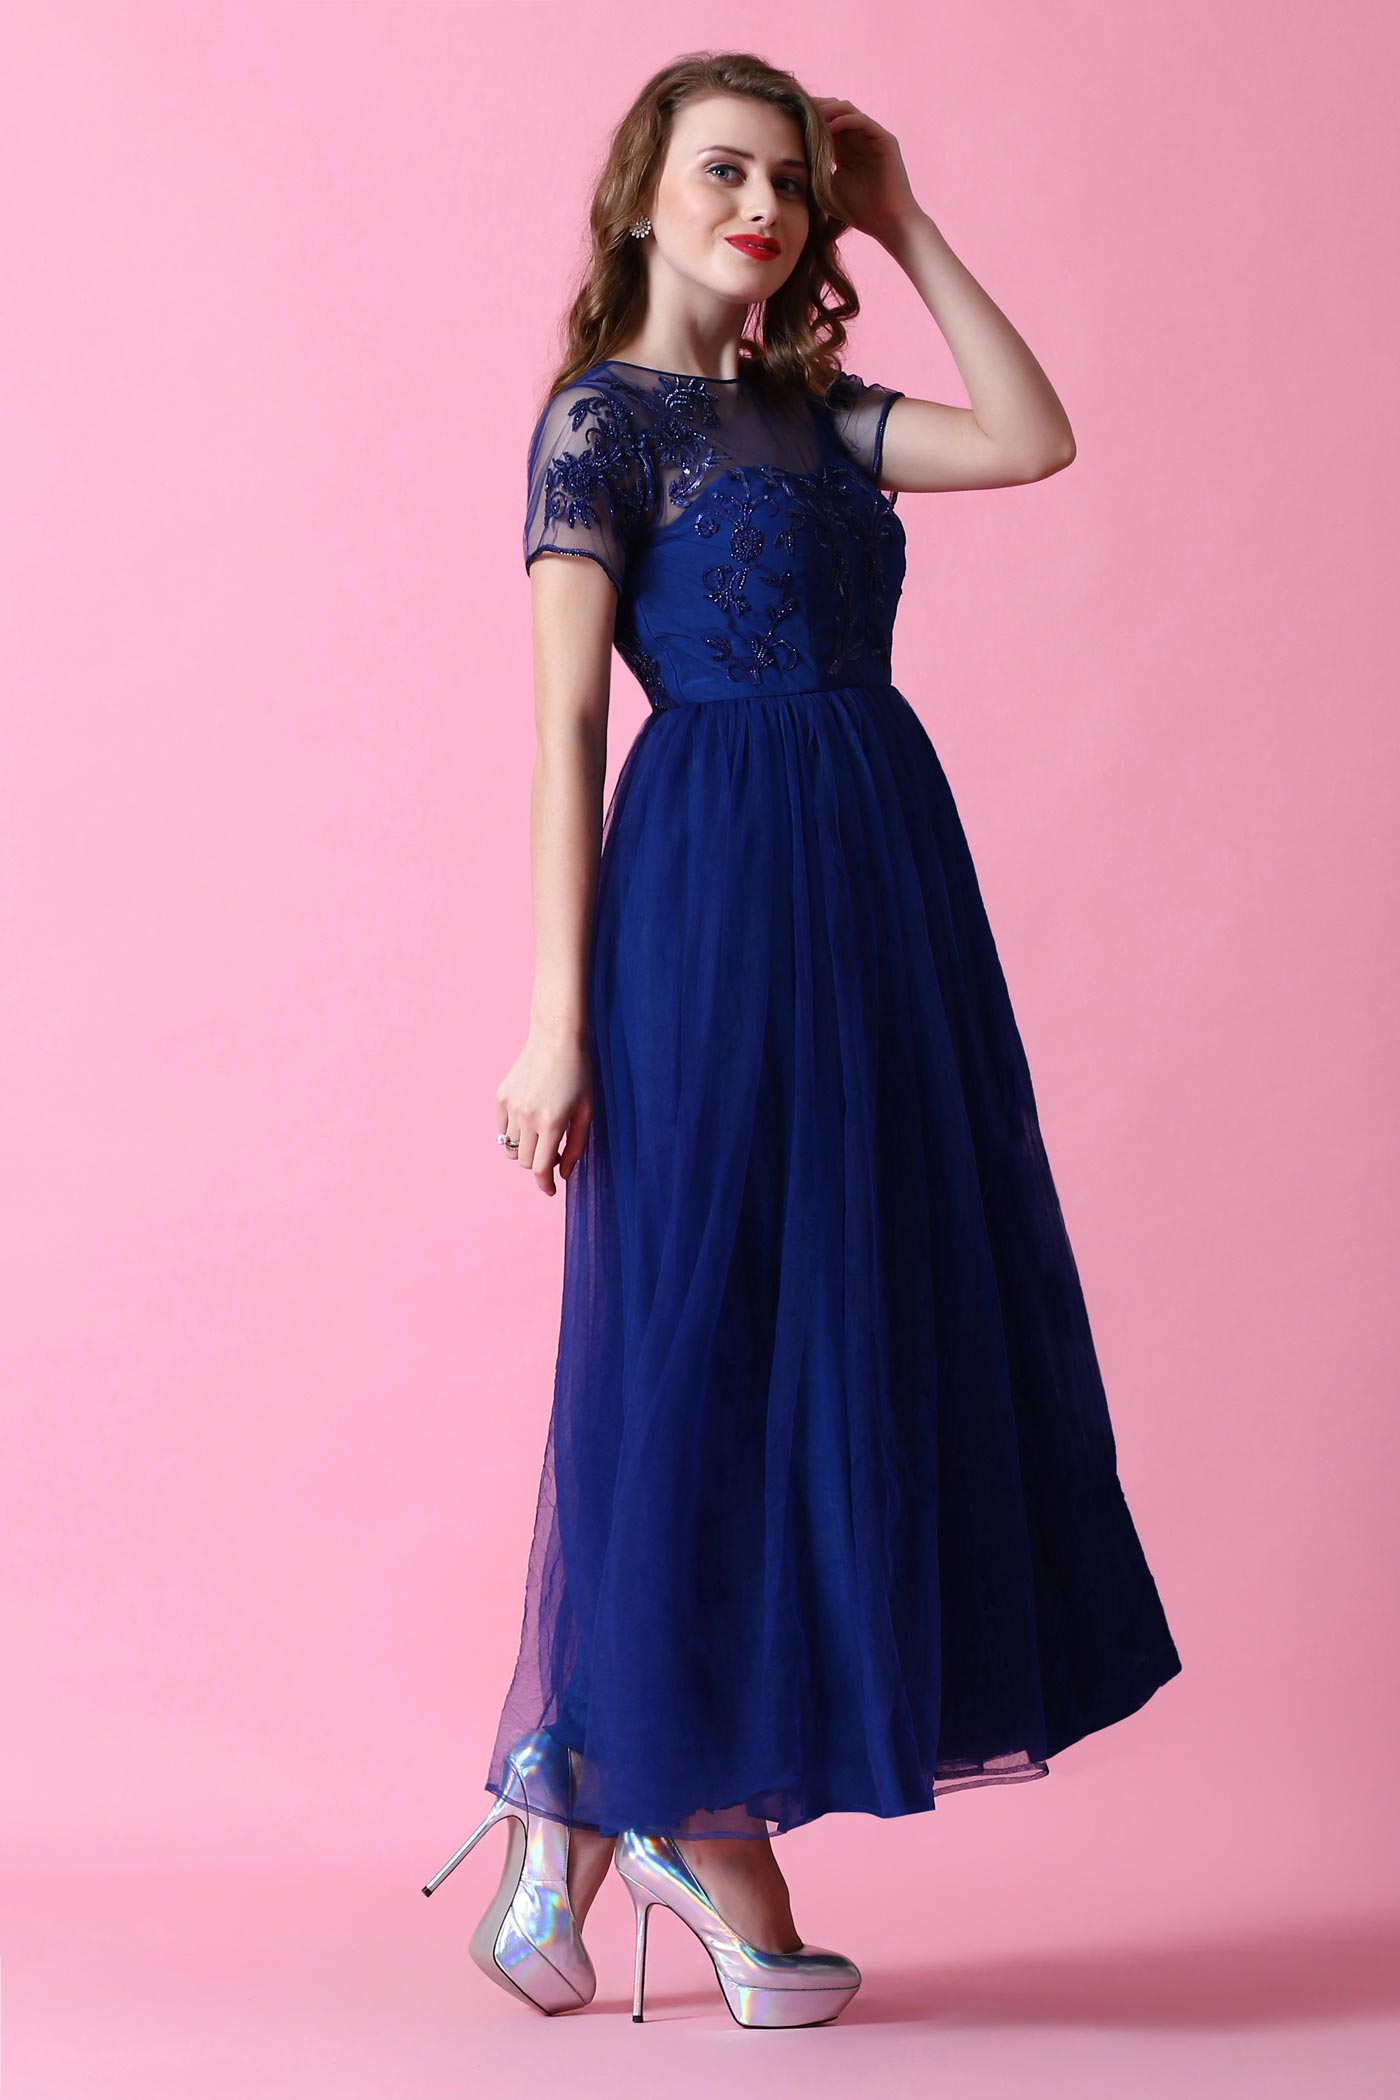 Midnight Blue Gown With Sequins And Cutdana Threadwork - Anjini Sharma